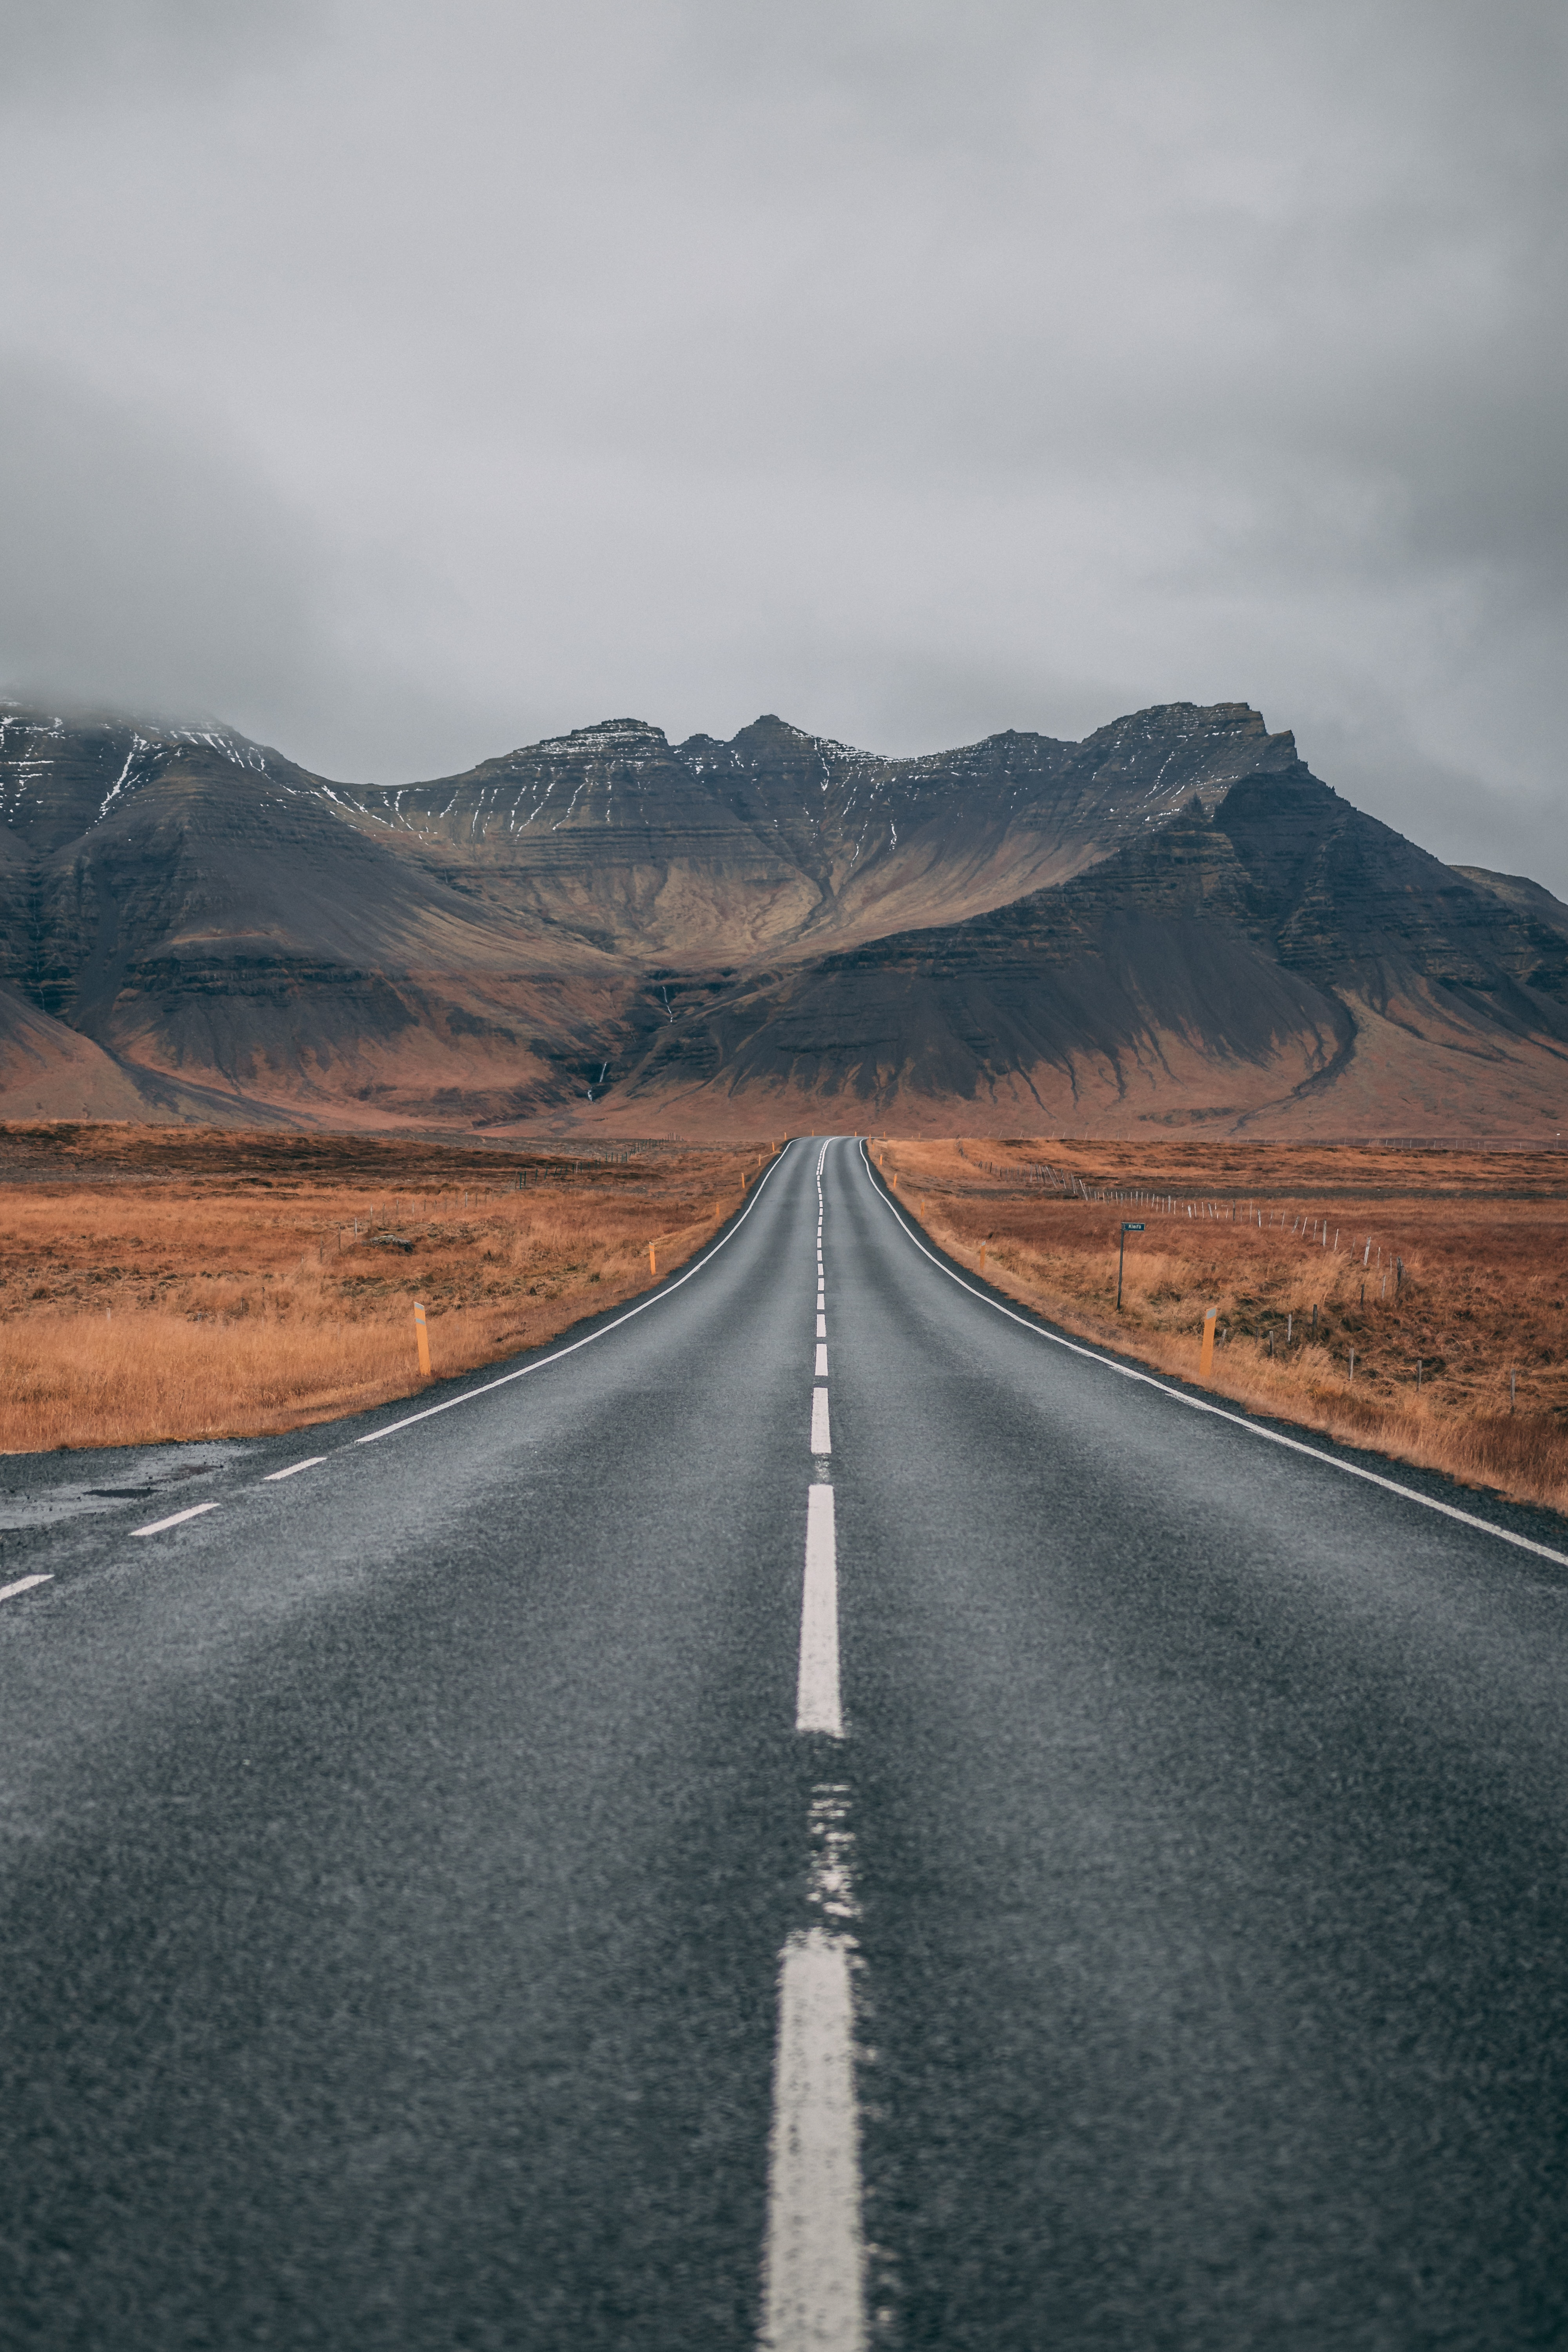 The open road to the mountains sparks idea of adventure